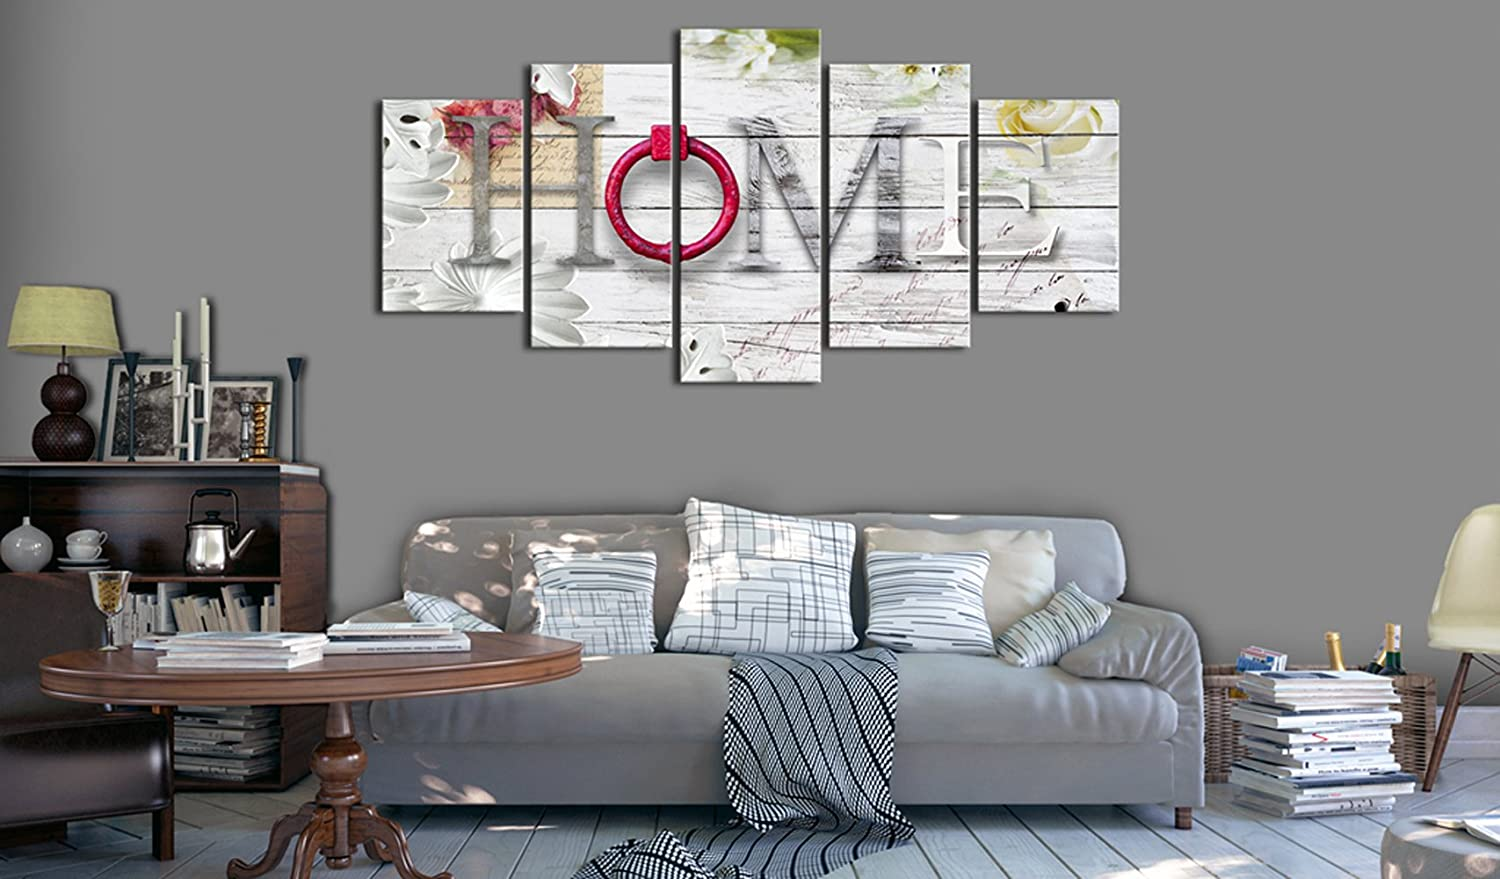 Dreamy Home Canvas Painting Modern Picture Print Wall Art Decoration 40 W x 20 H